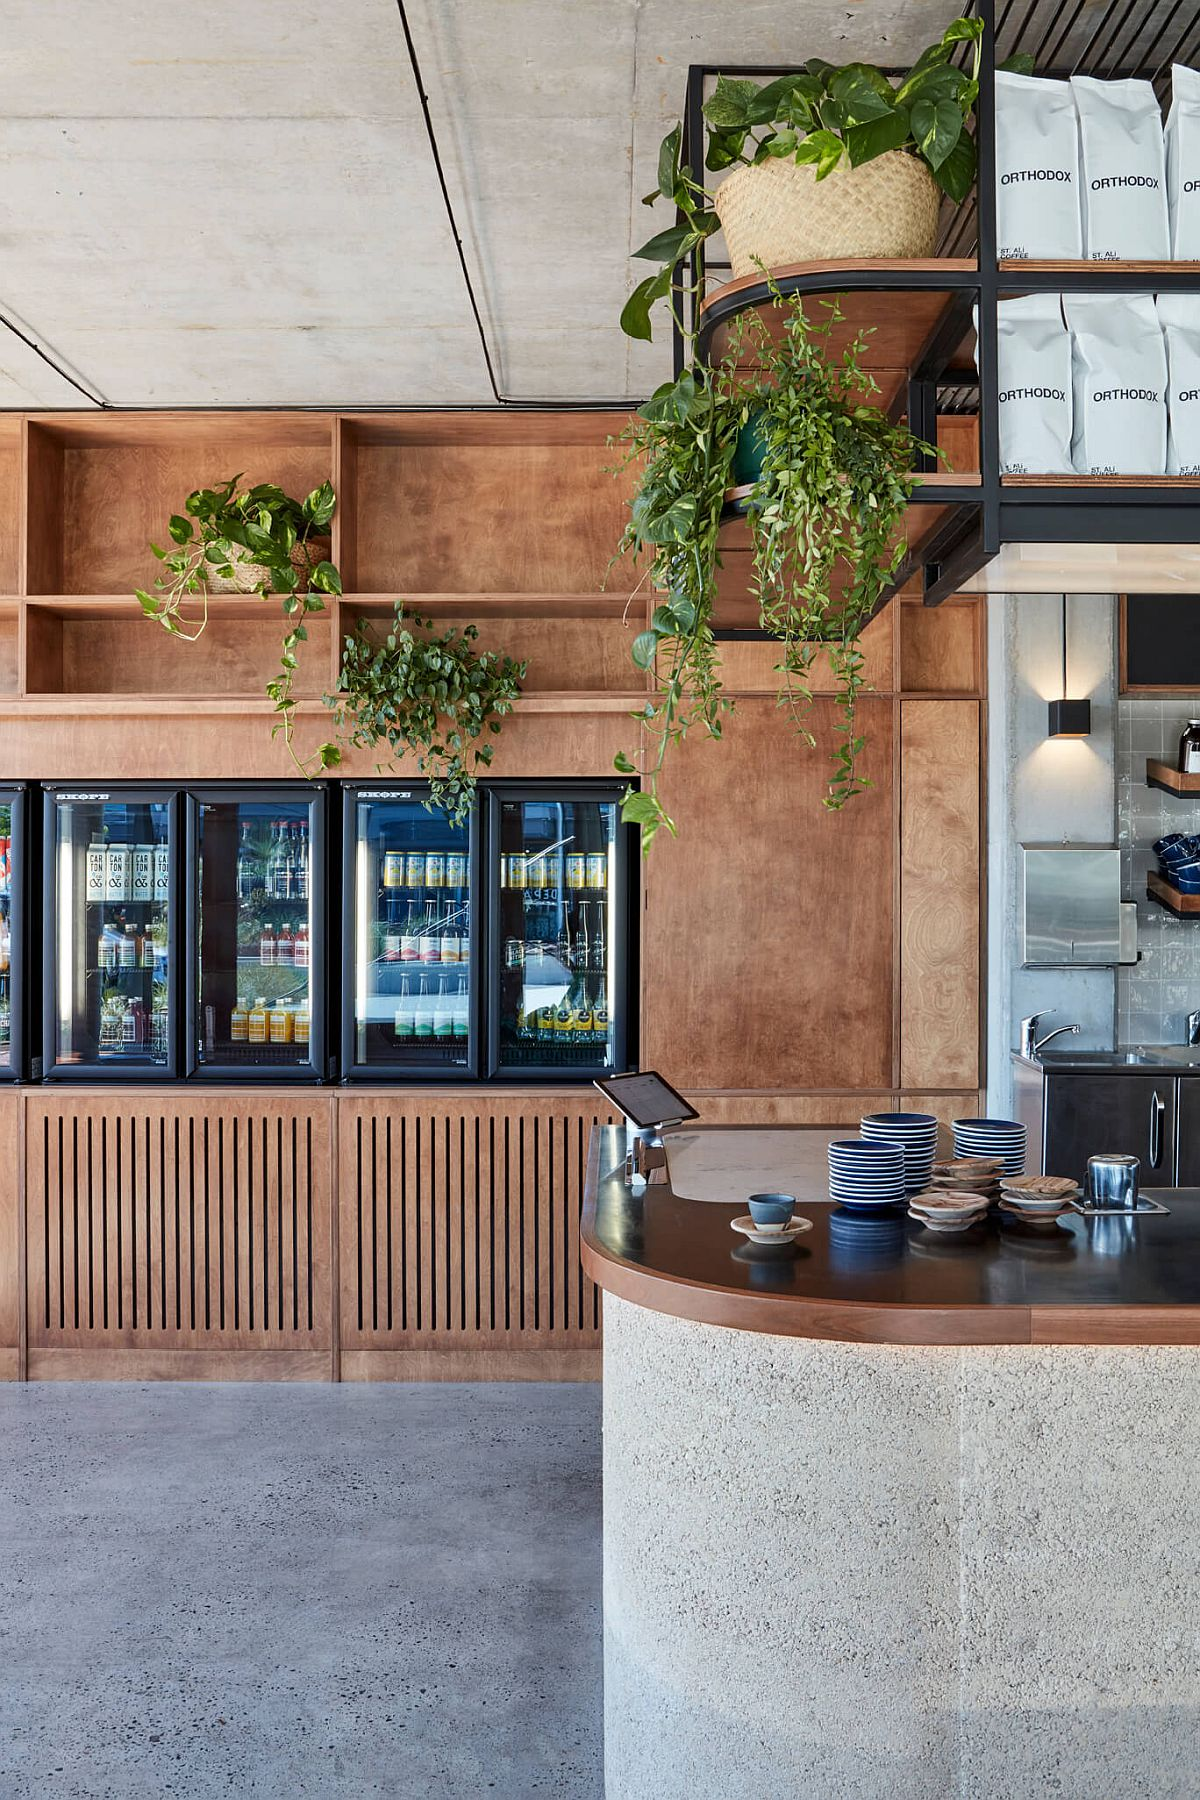 25-meter-long-bar-for-the-new-restaurant-feels-both-organic-and-low-key-46972